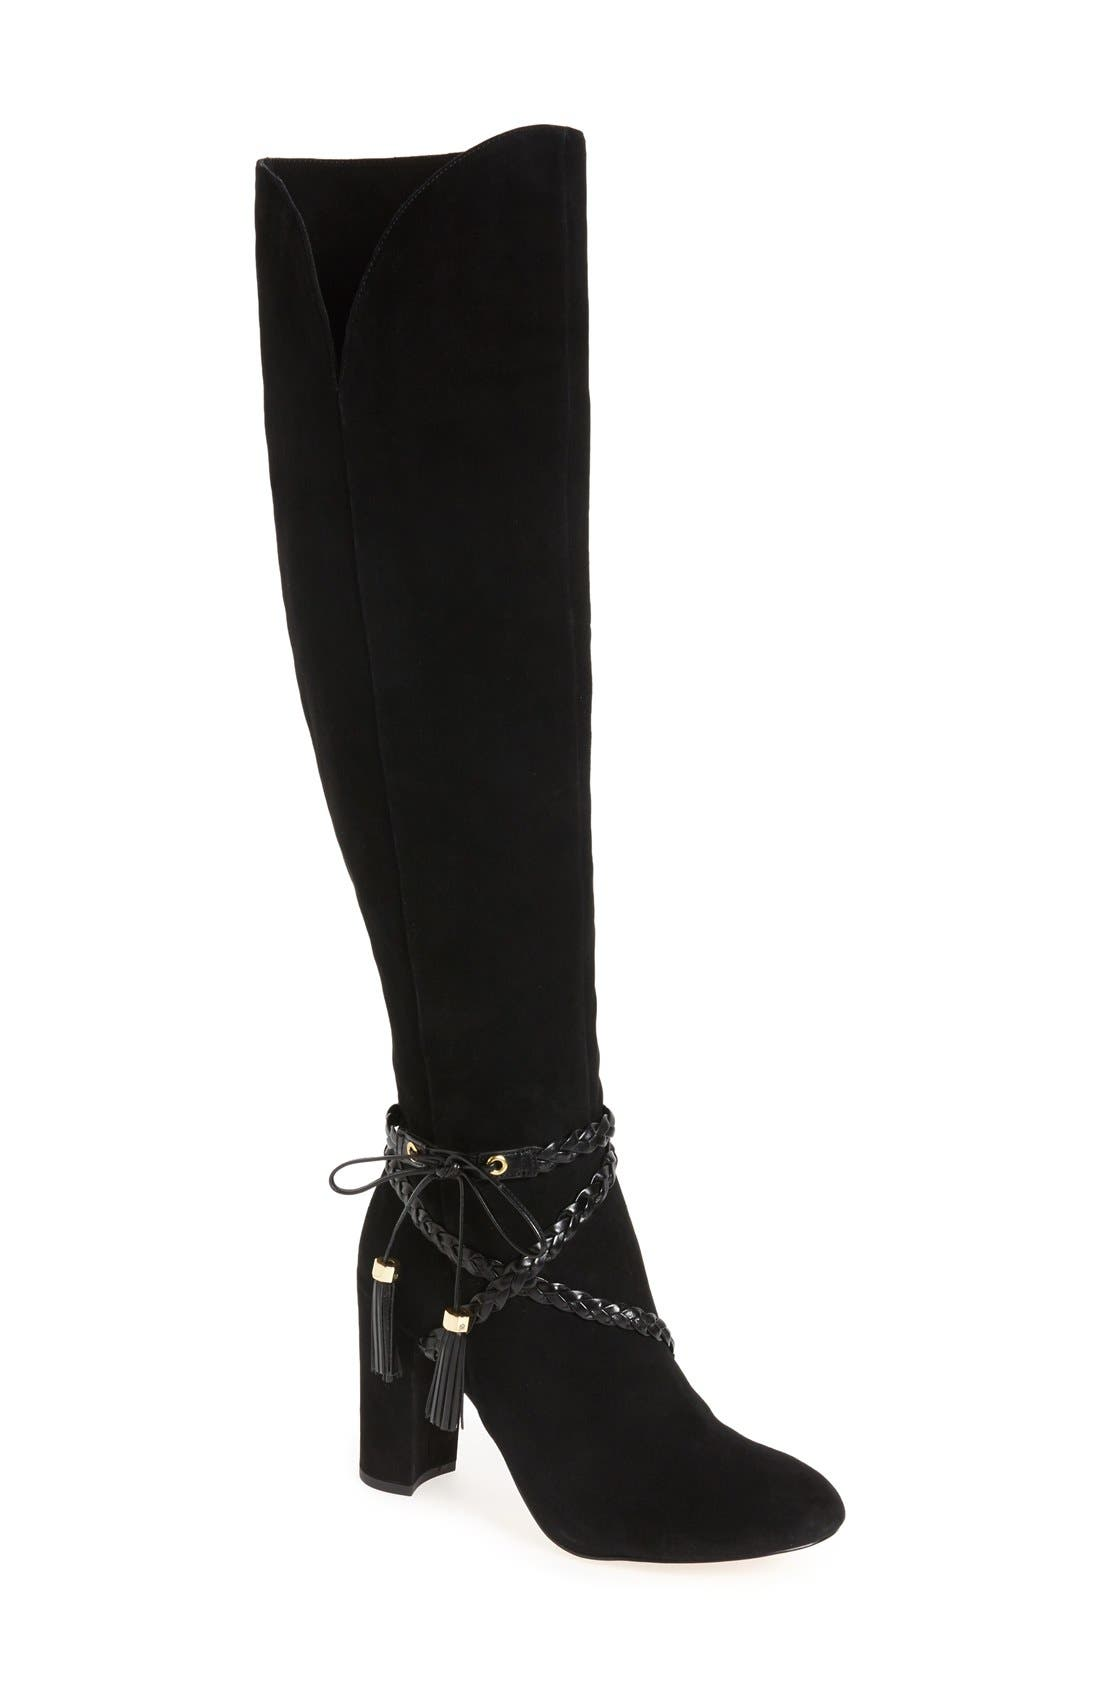 Alternate Image 1 Selected - Louise et Cie 'Tallen' Over the Knee Boot (Women) (Wide Calf)